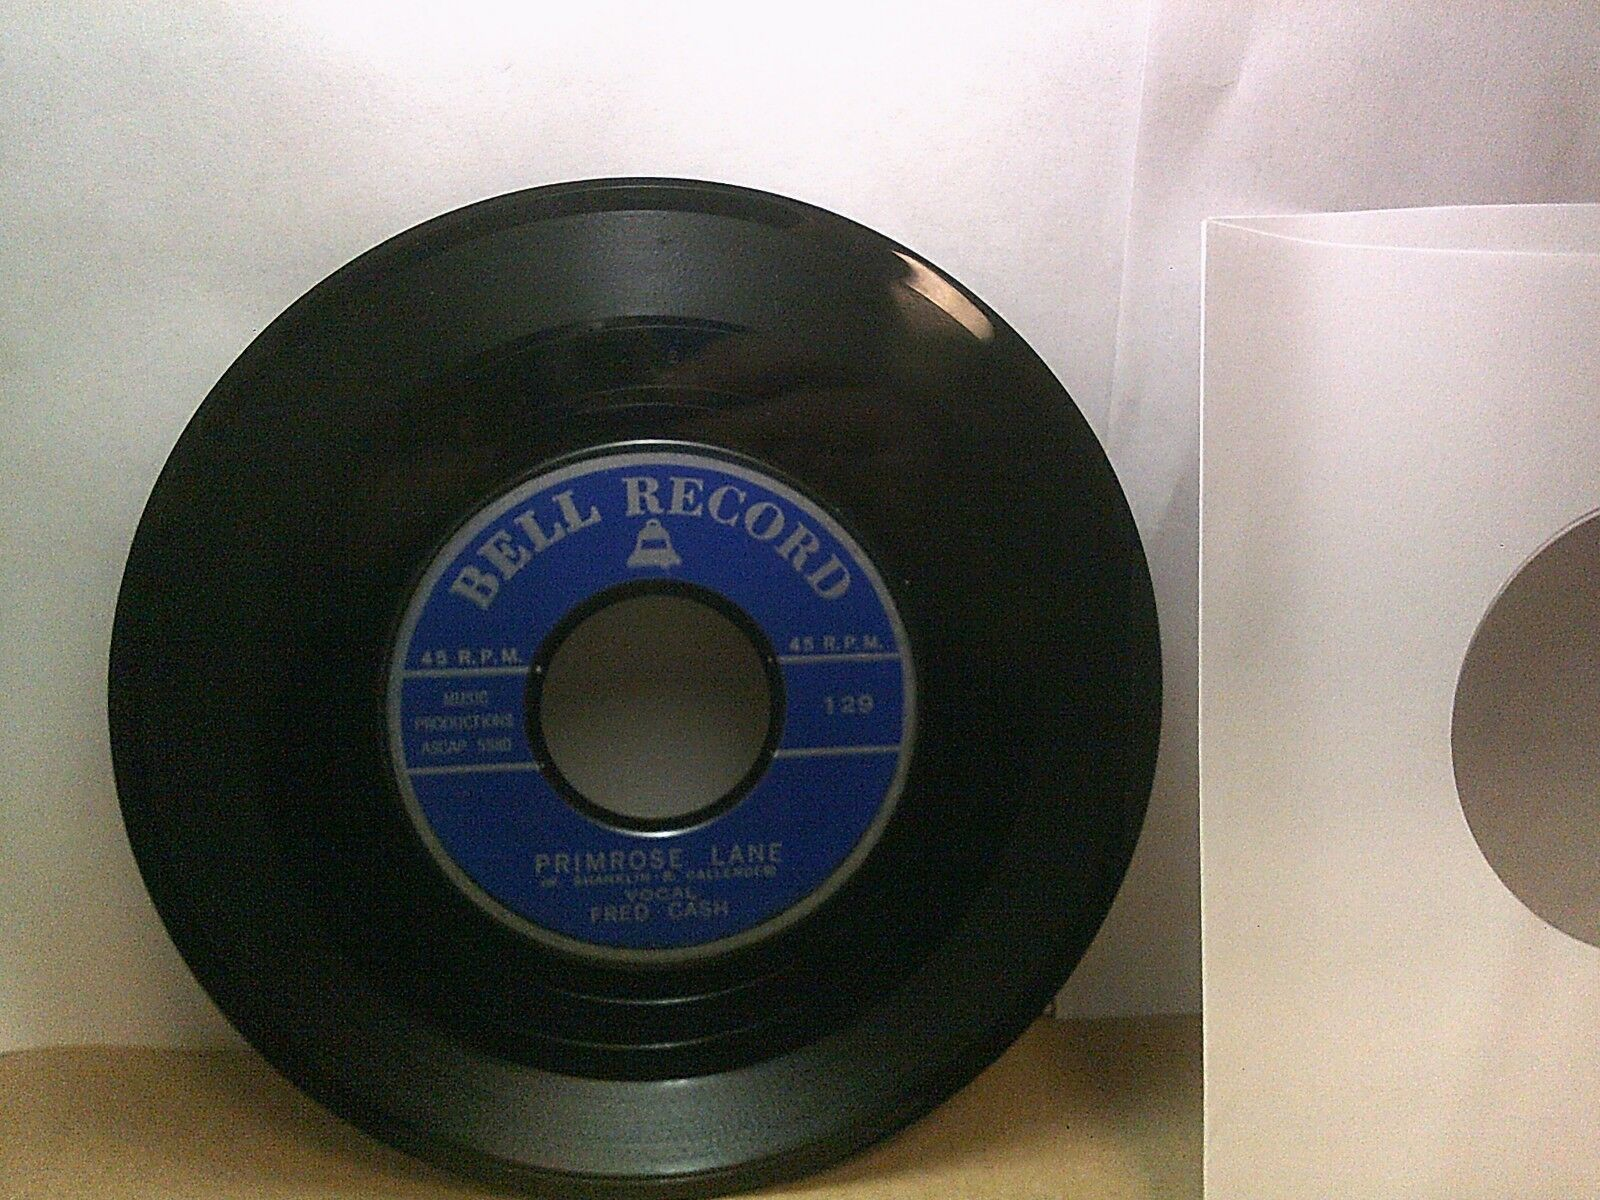 Old 45 RPM Record - Bell Record 129 - Fred Cash - Primrose Lane / Johnny Cannon